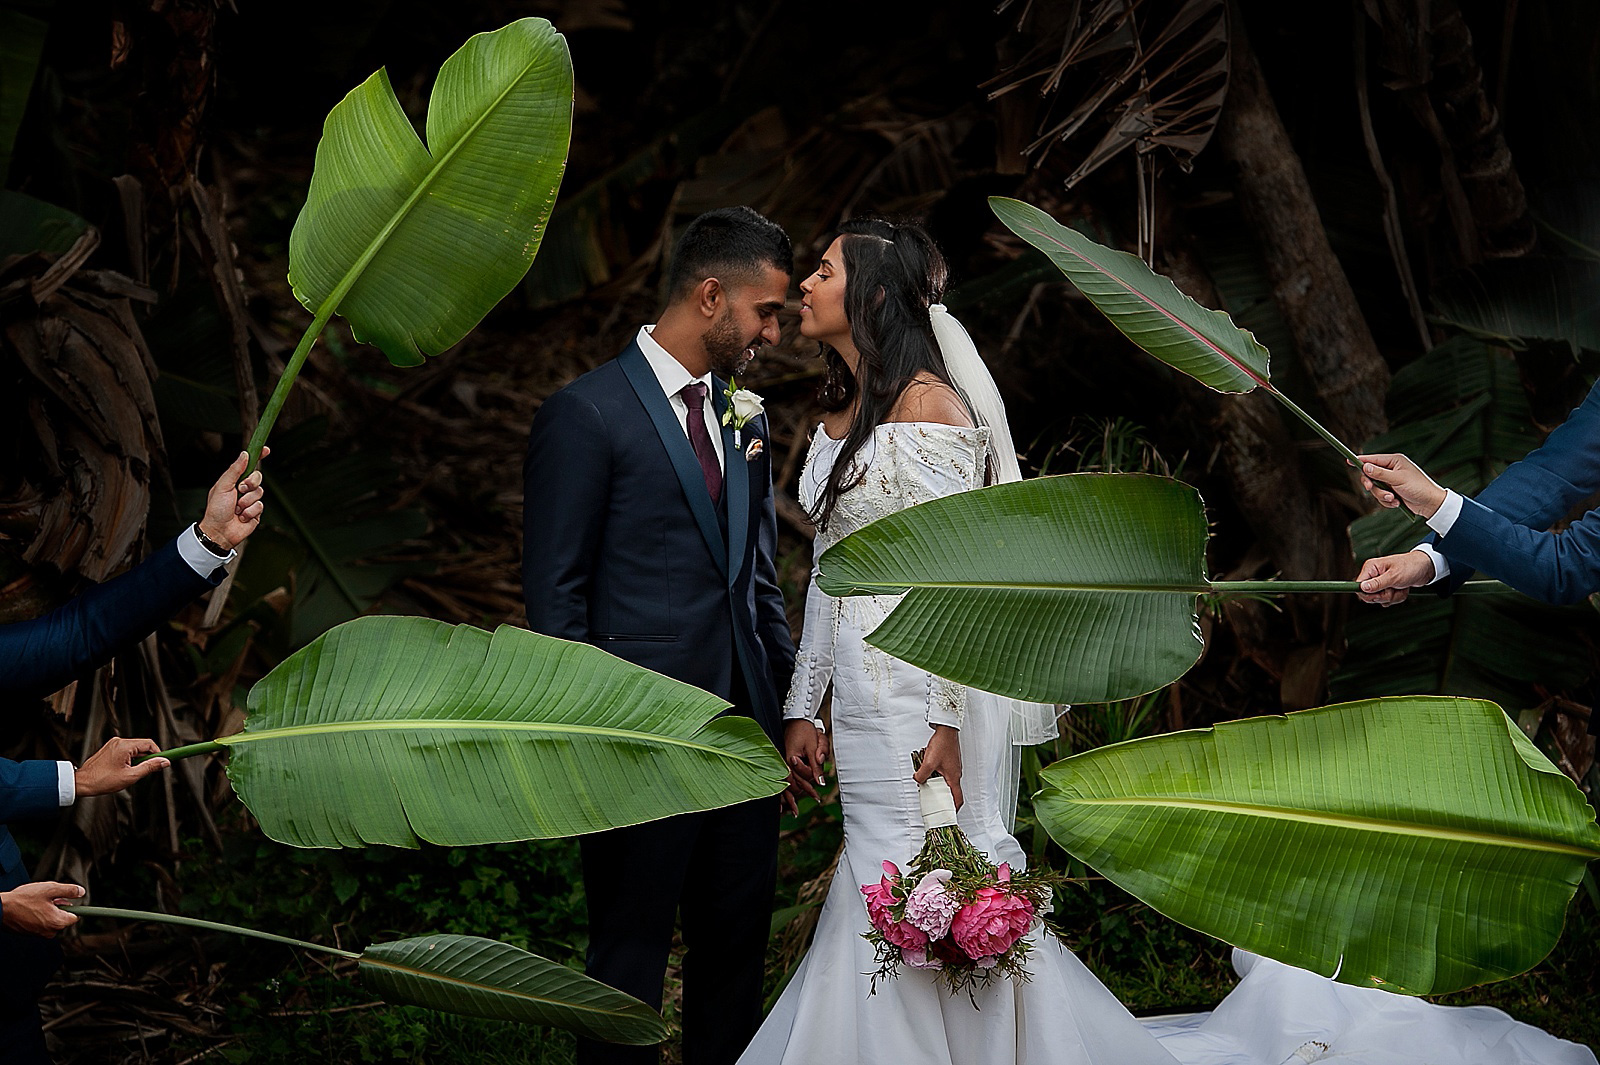 Destination wedding at Zimbali South Africa photographed by top South African wedding photographer Jacki Bruniquel